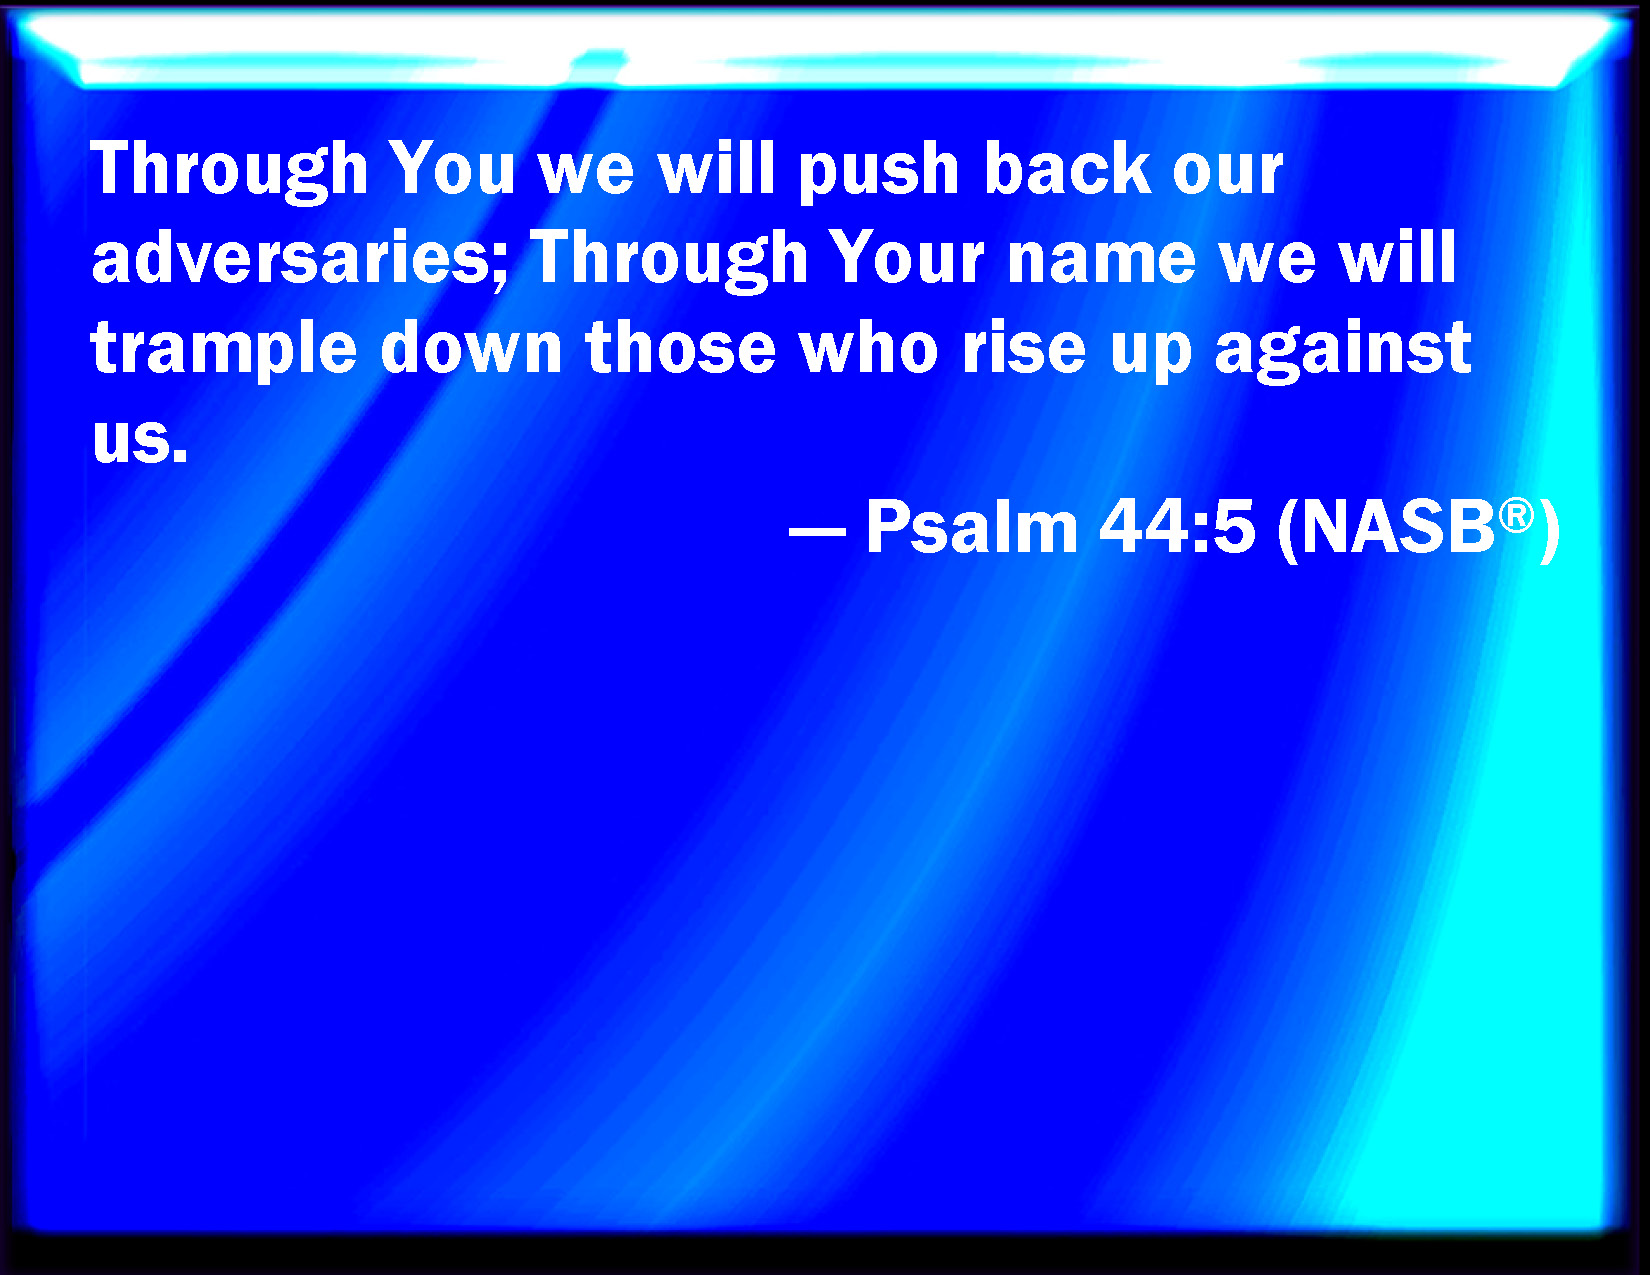 Down Through Will Psalm You We EnemiesYour 44 5 Push Our 3L4ARj5